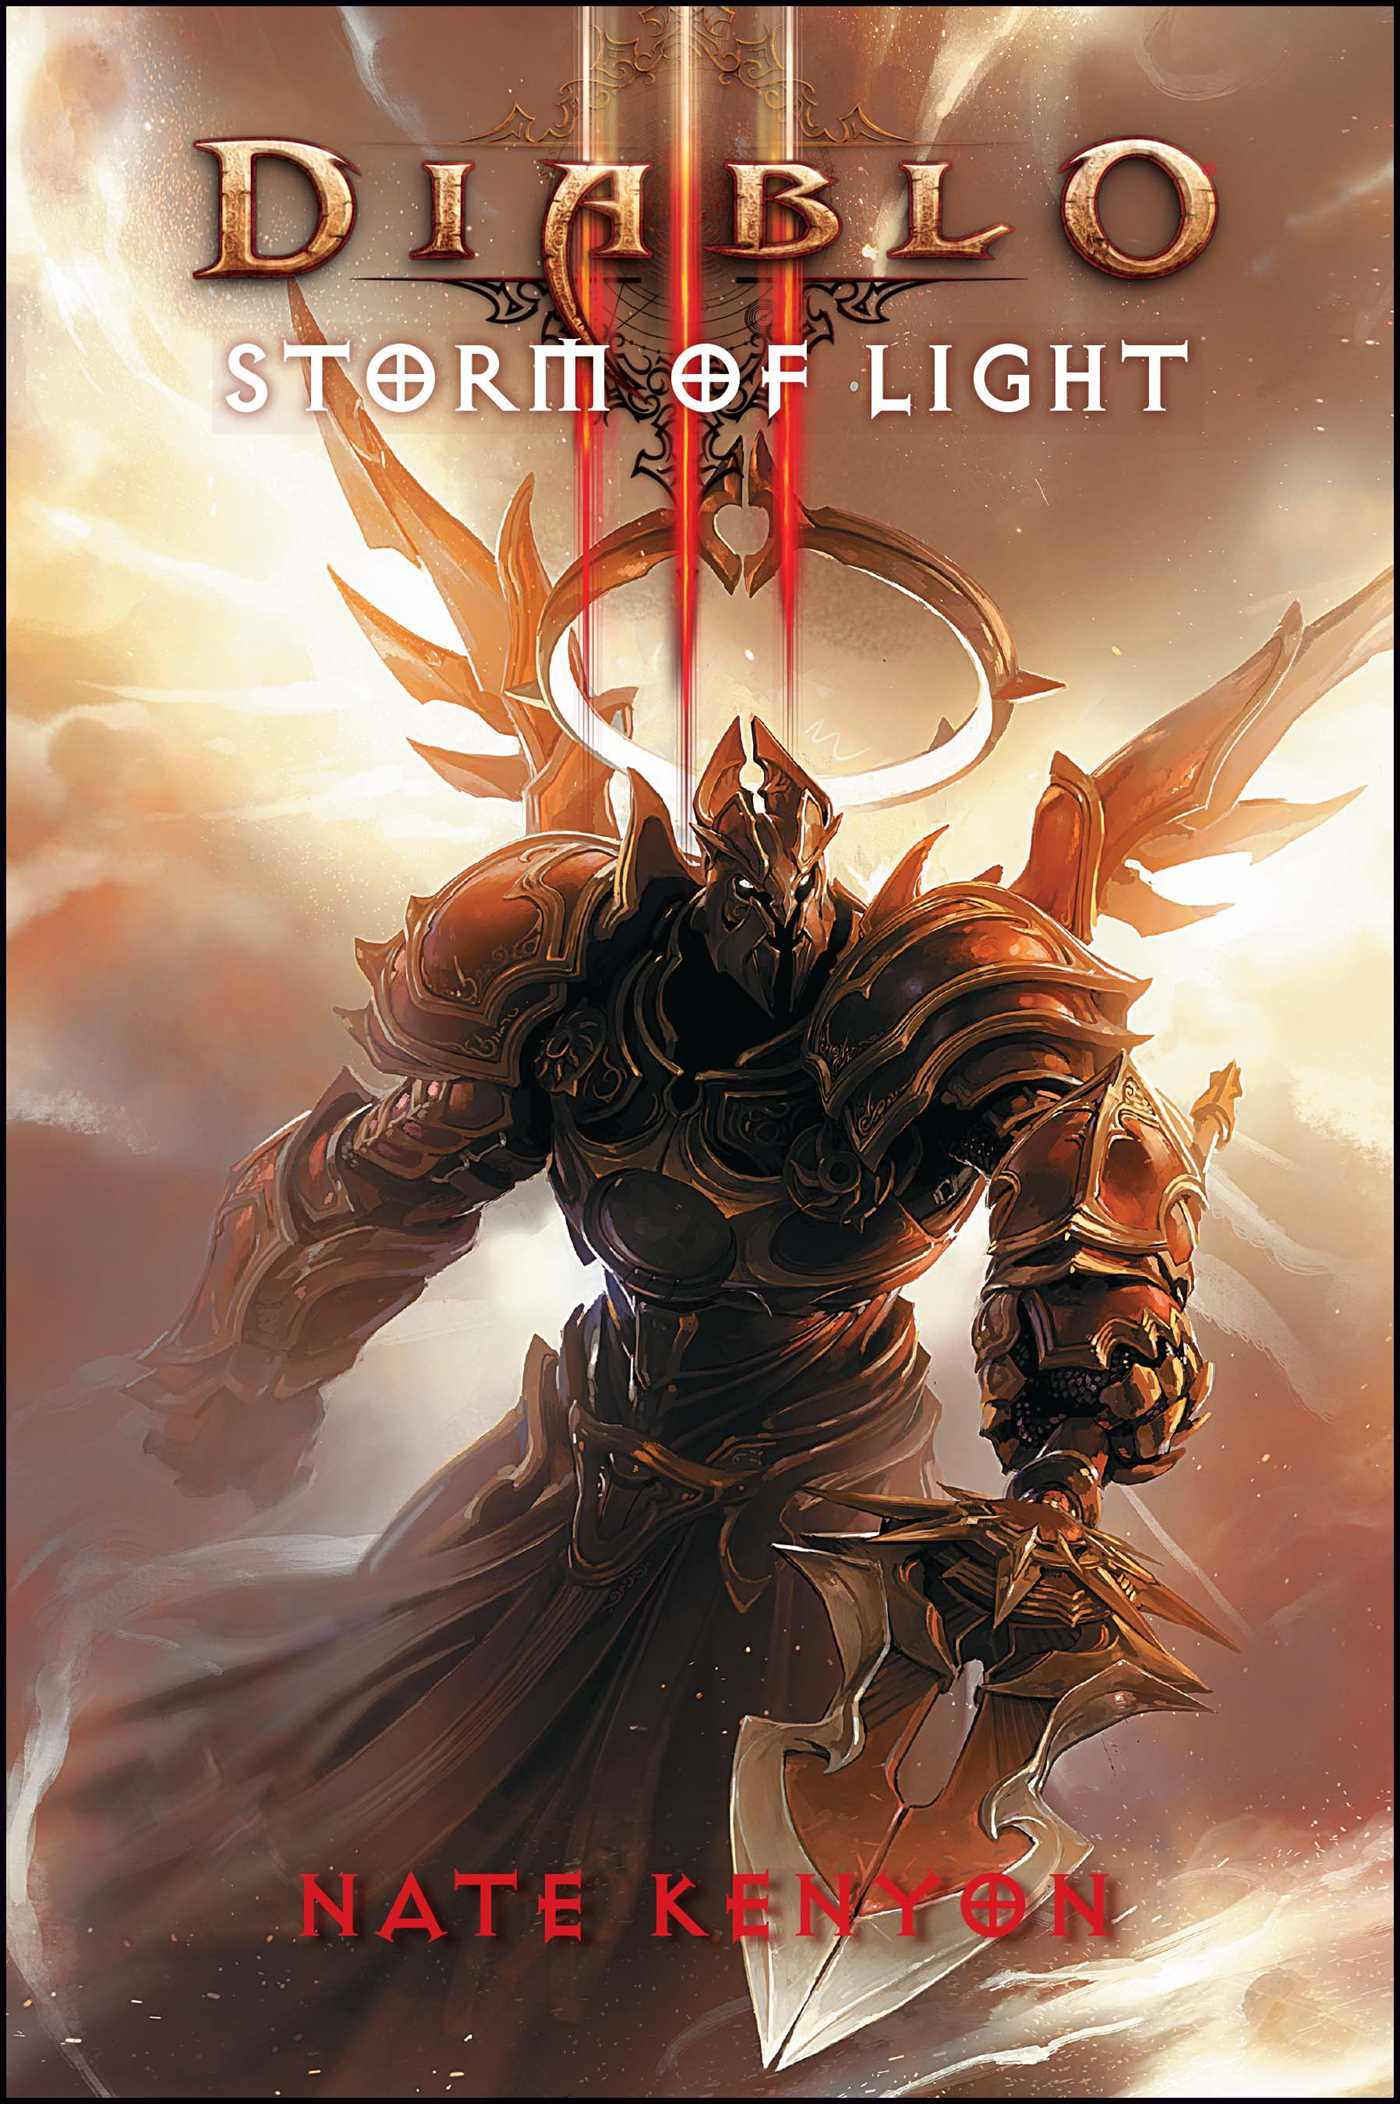 Diablo iii storm of light 9781416550808 hr